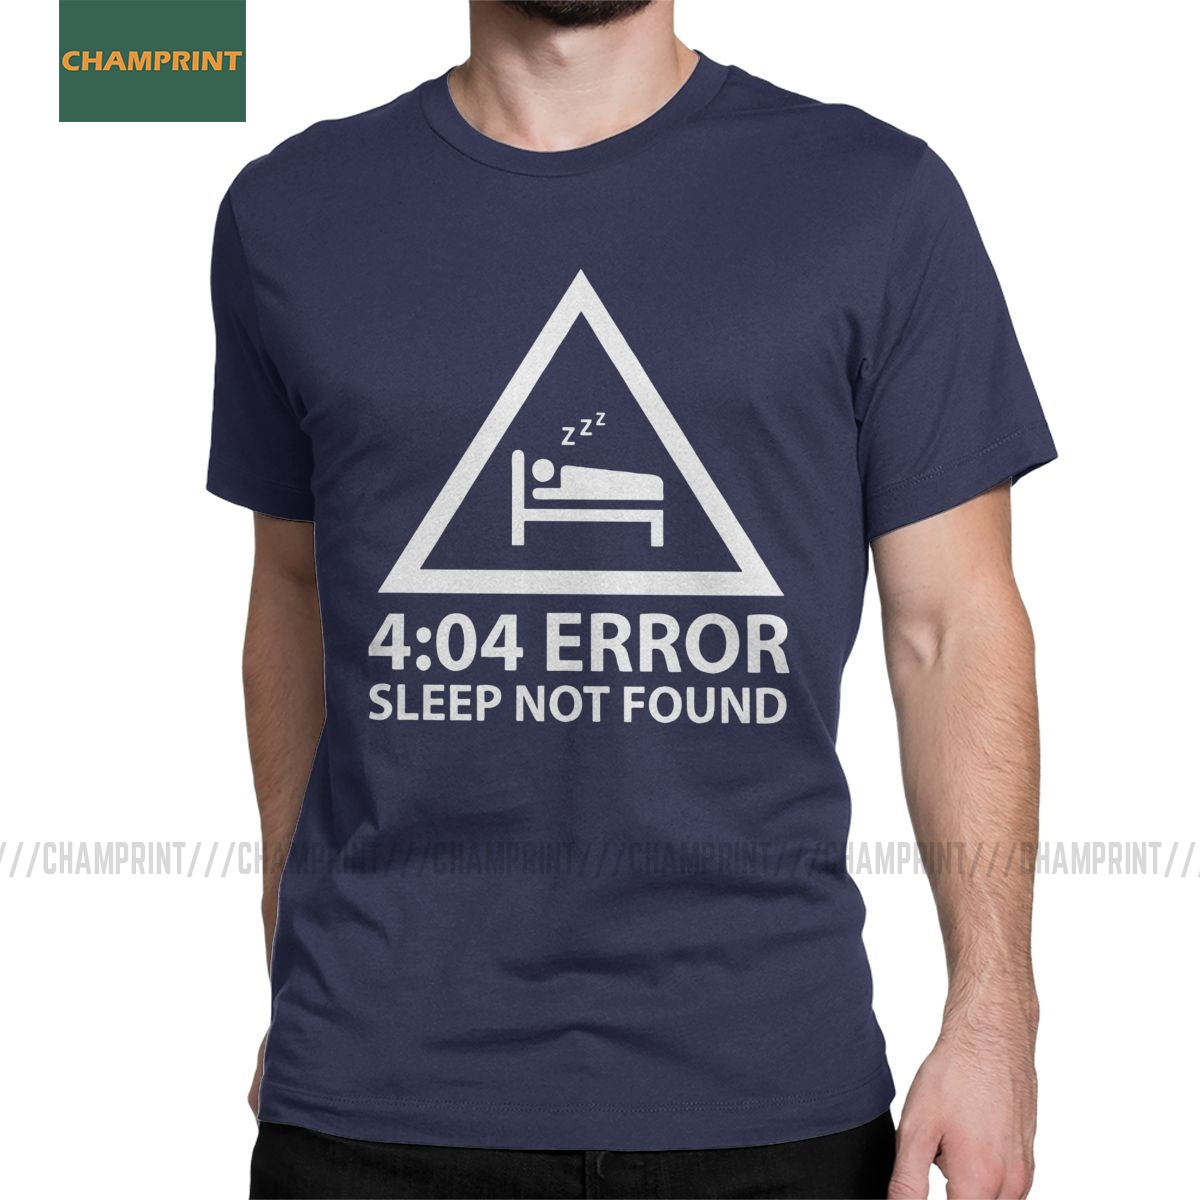 Men's T-<font><b>Shirts</b></font> <font><b>404</b></font> <font><b>Error</b></font> Sleep Not Found Programmer Cotton Tees Short Sleeve Programming Coding Software Web Coder T <font><b>Shirts</b></font> image